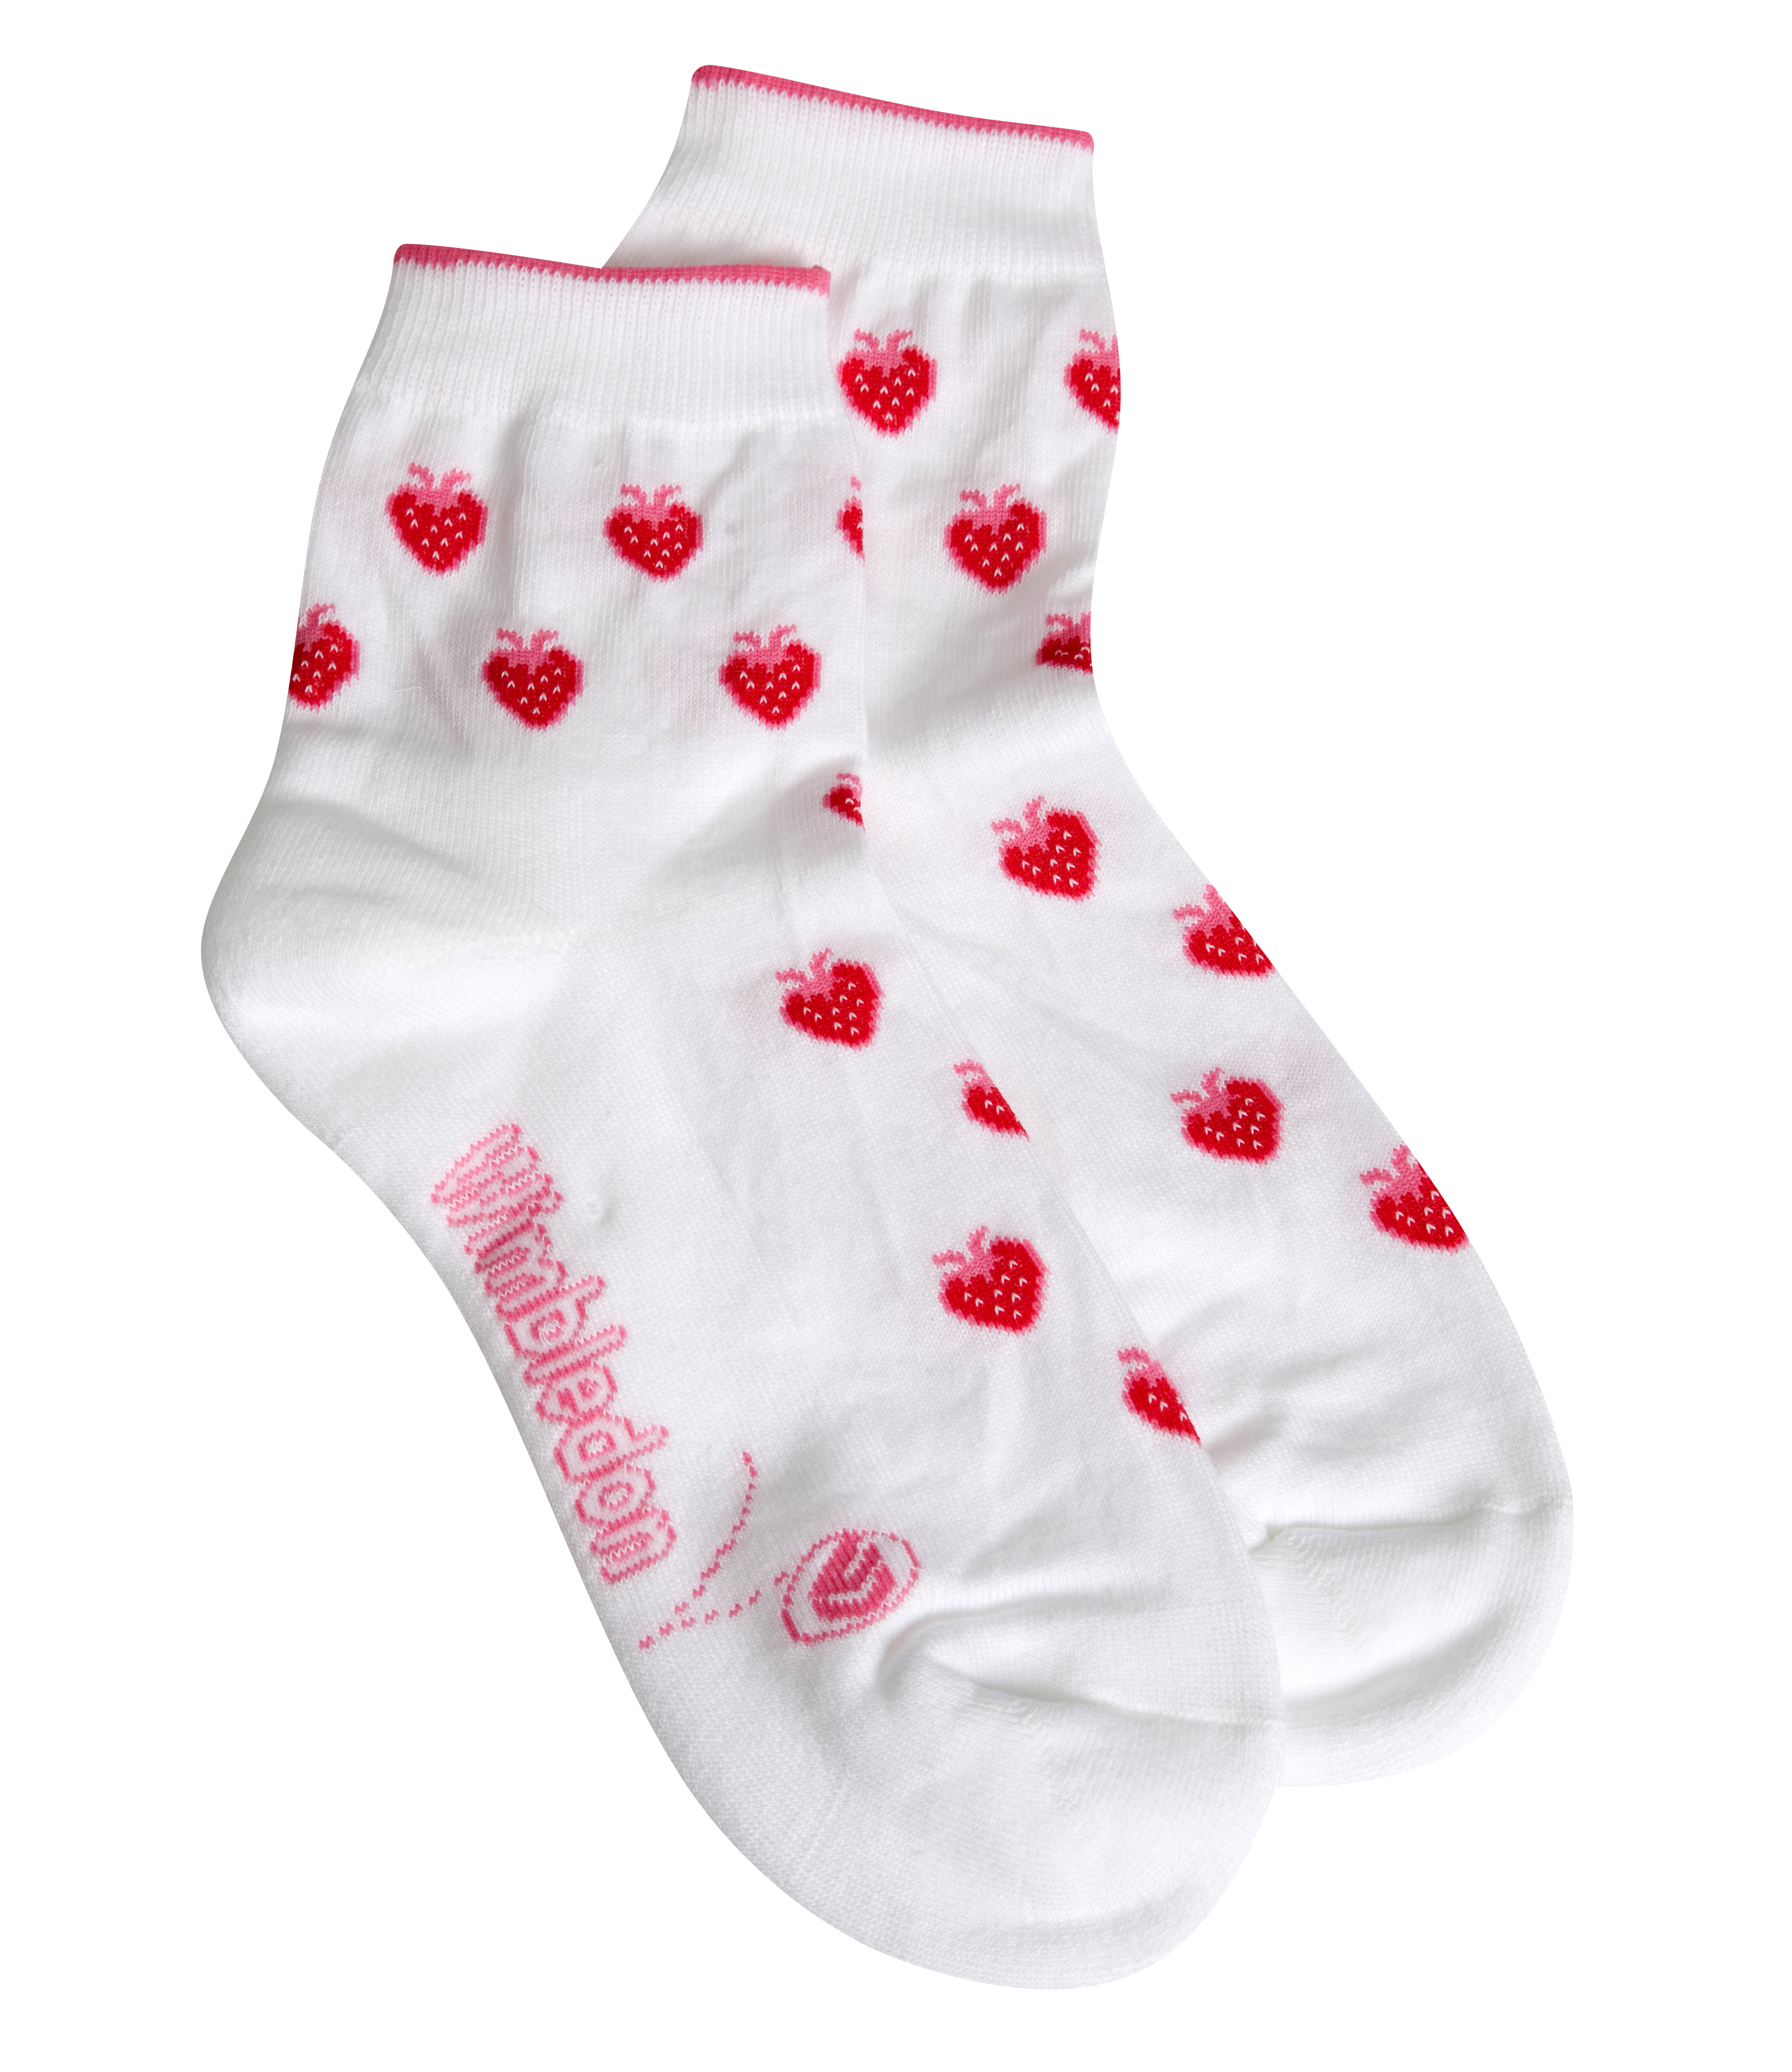 Wimbledon Strawberry Socks - White/Pink - Girls